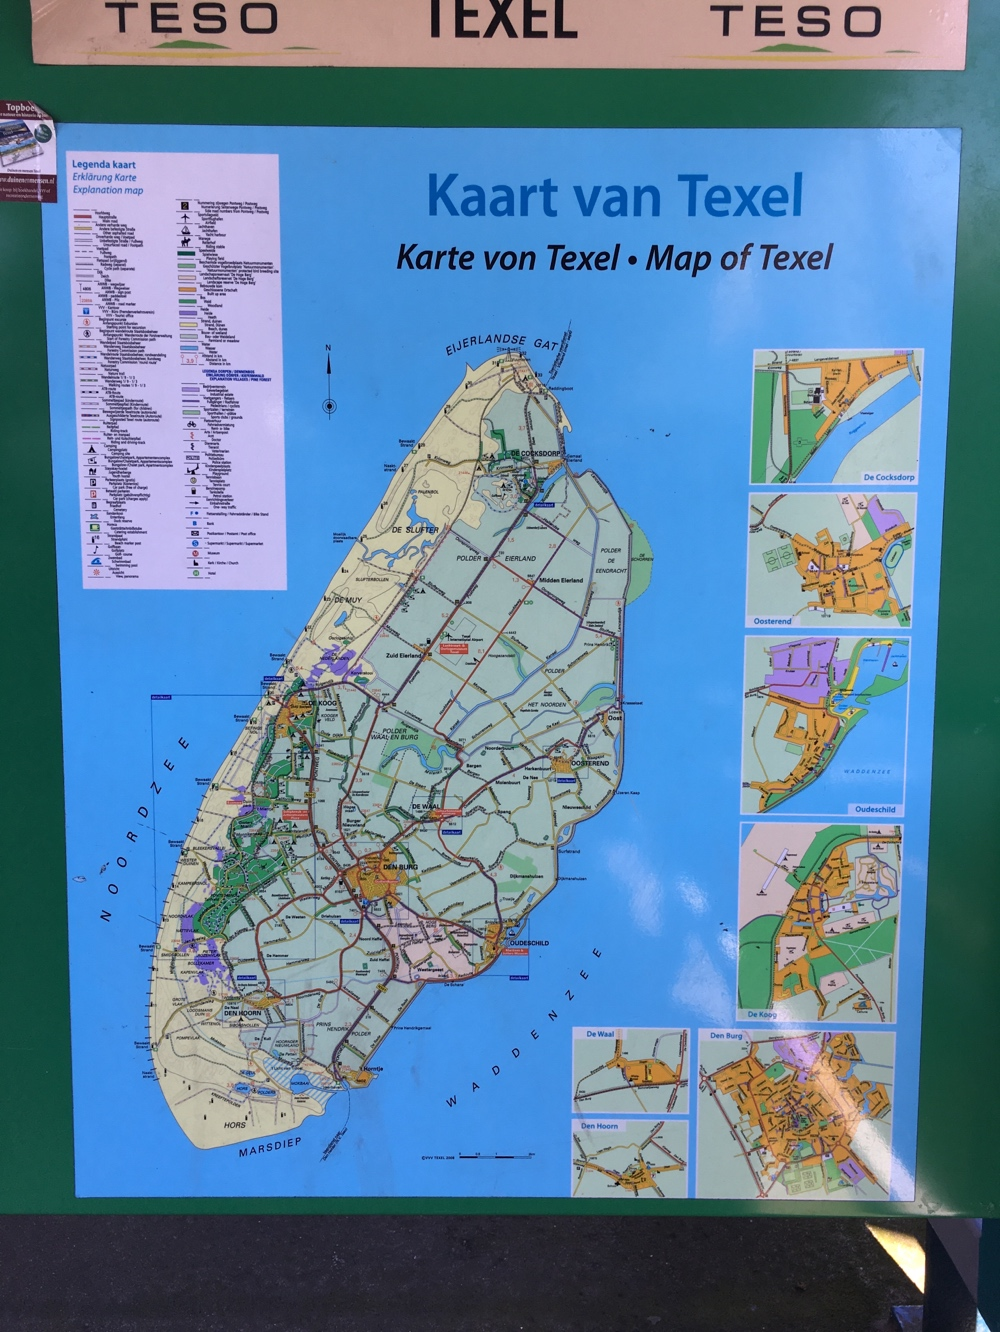 Karte Texel.Texel Holland 2017 Michael And Pam S Travels